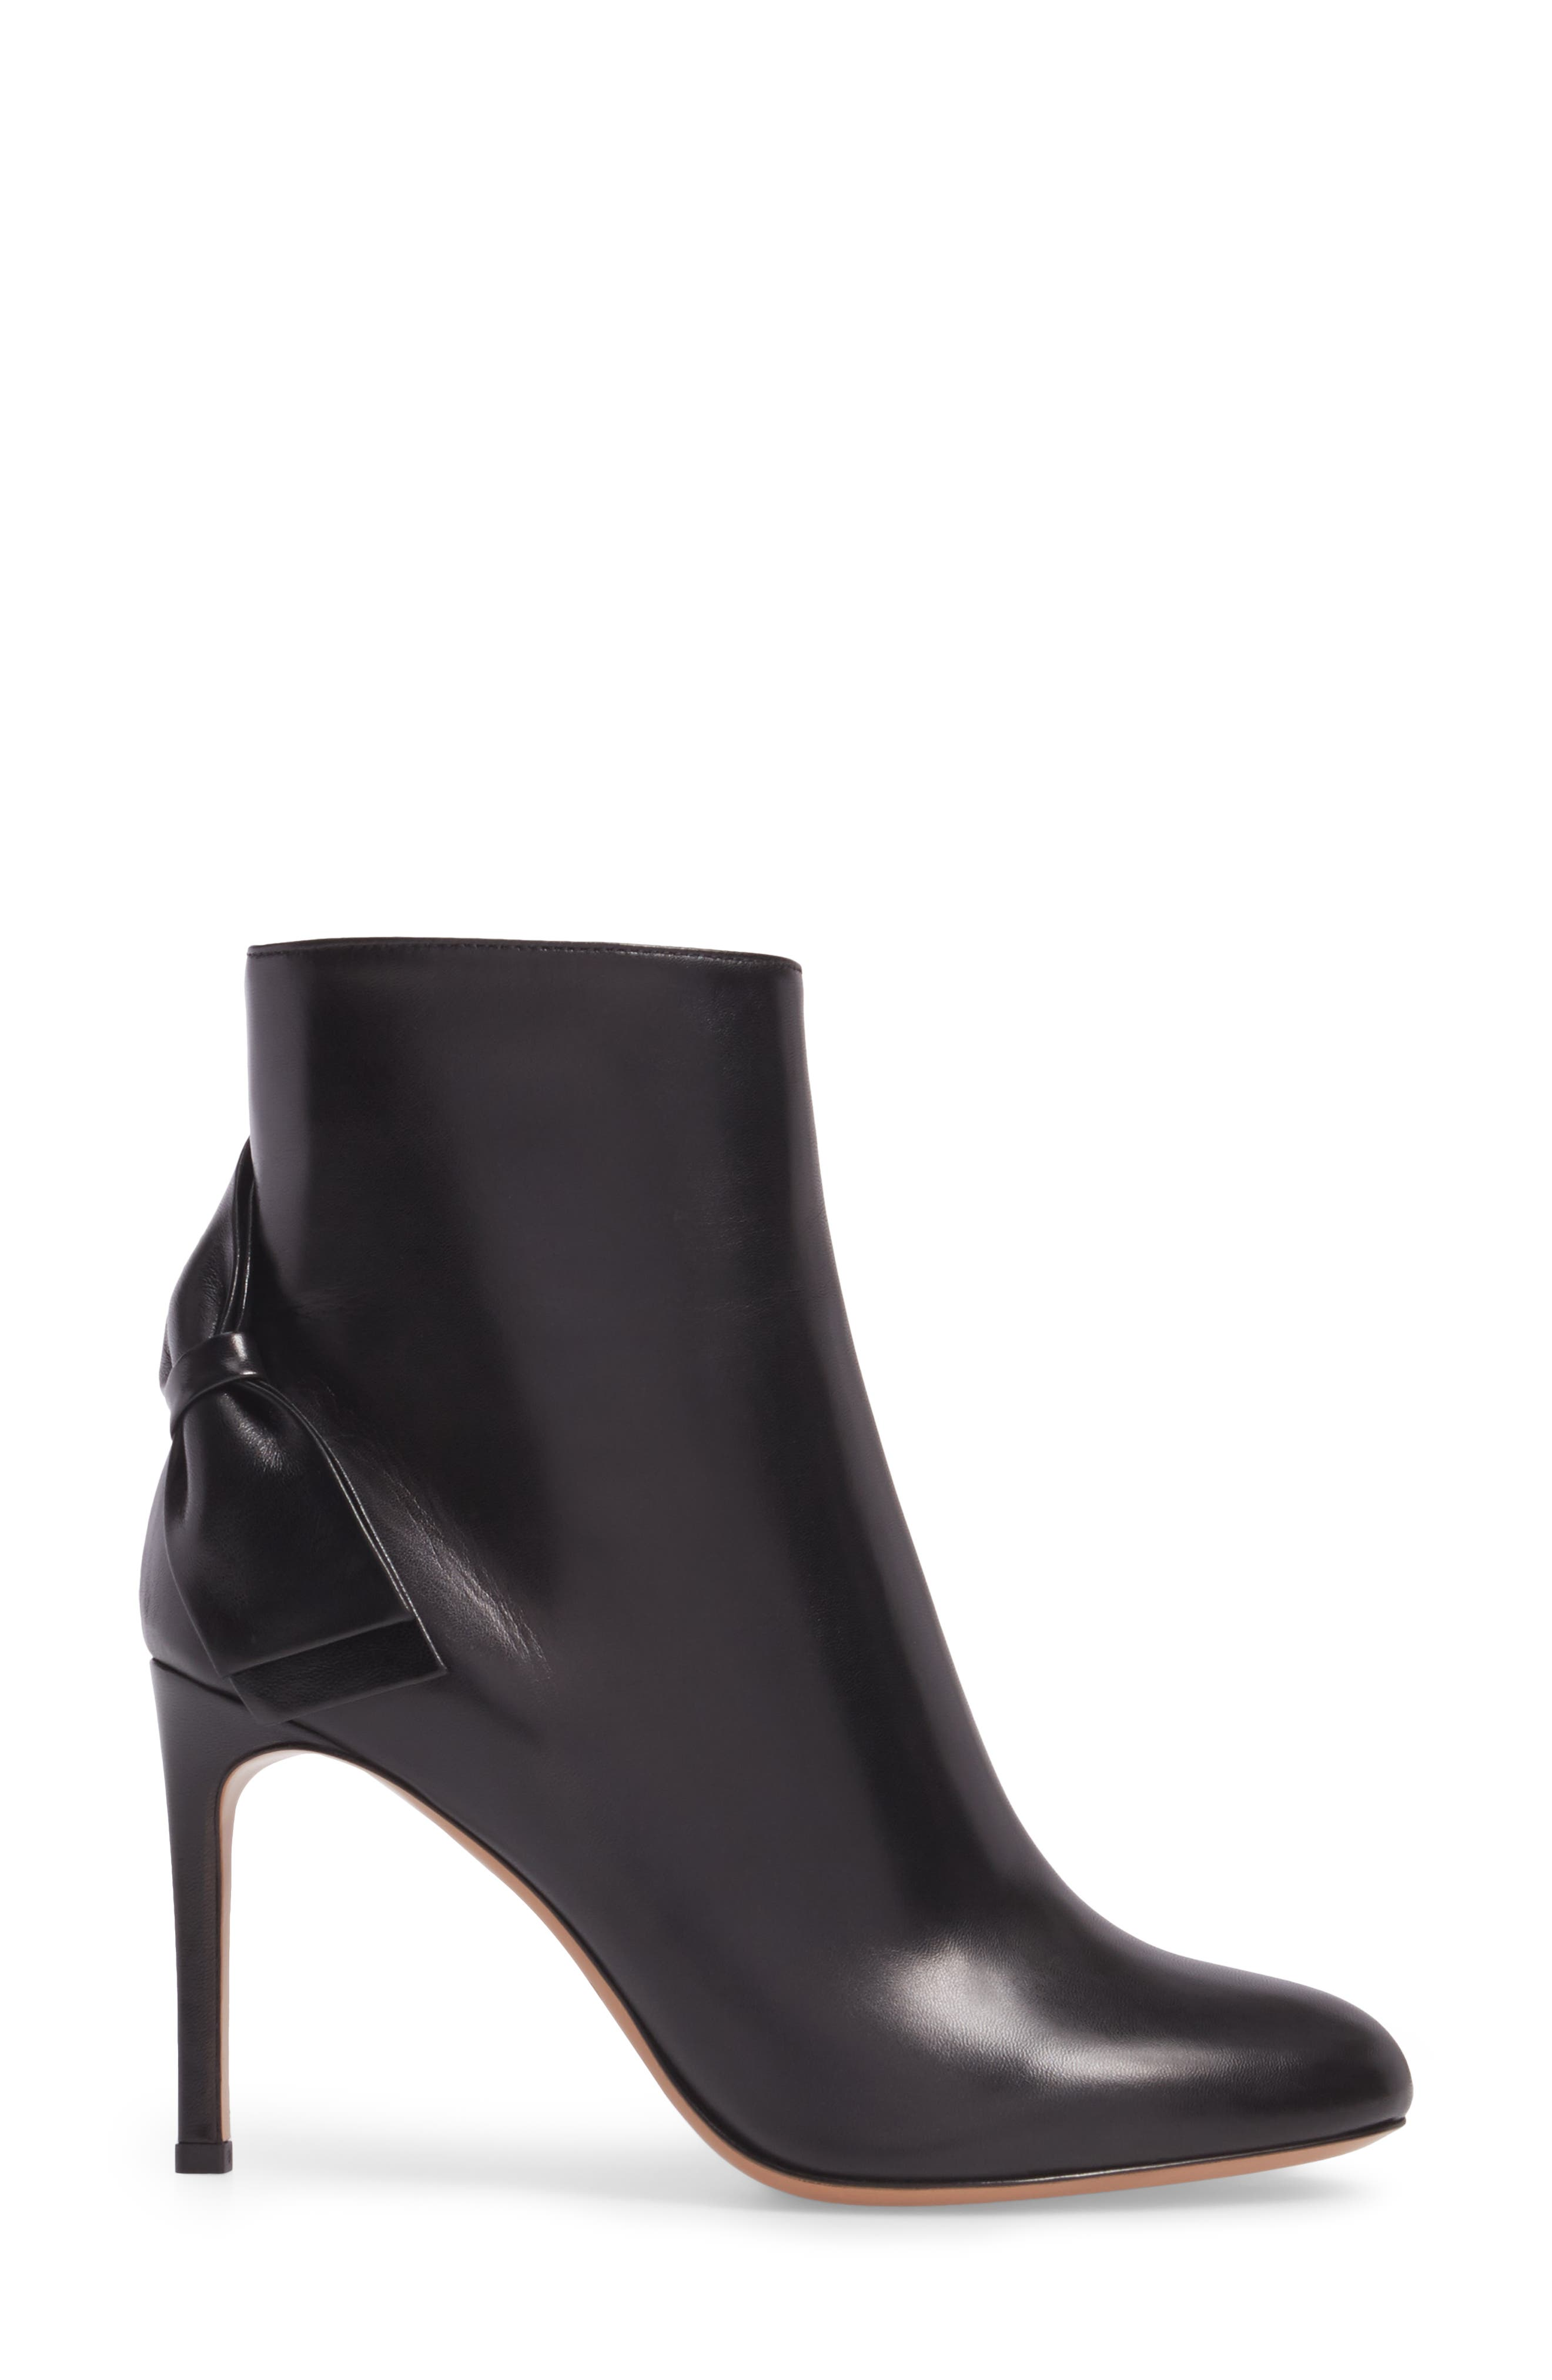 GARAVANI Pretty Bow Bootie,                             Alternate thumbnail 3, color,                             Black Leather